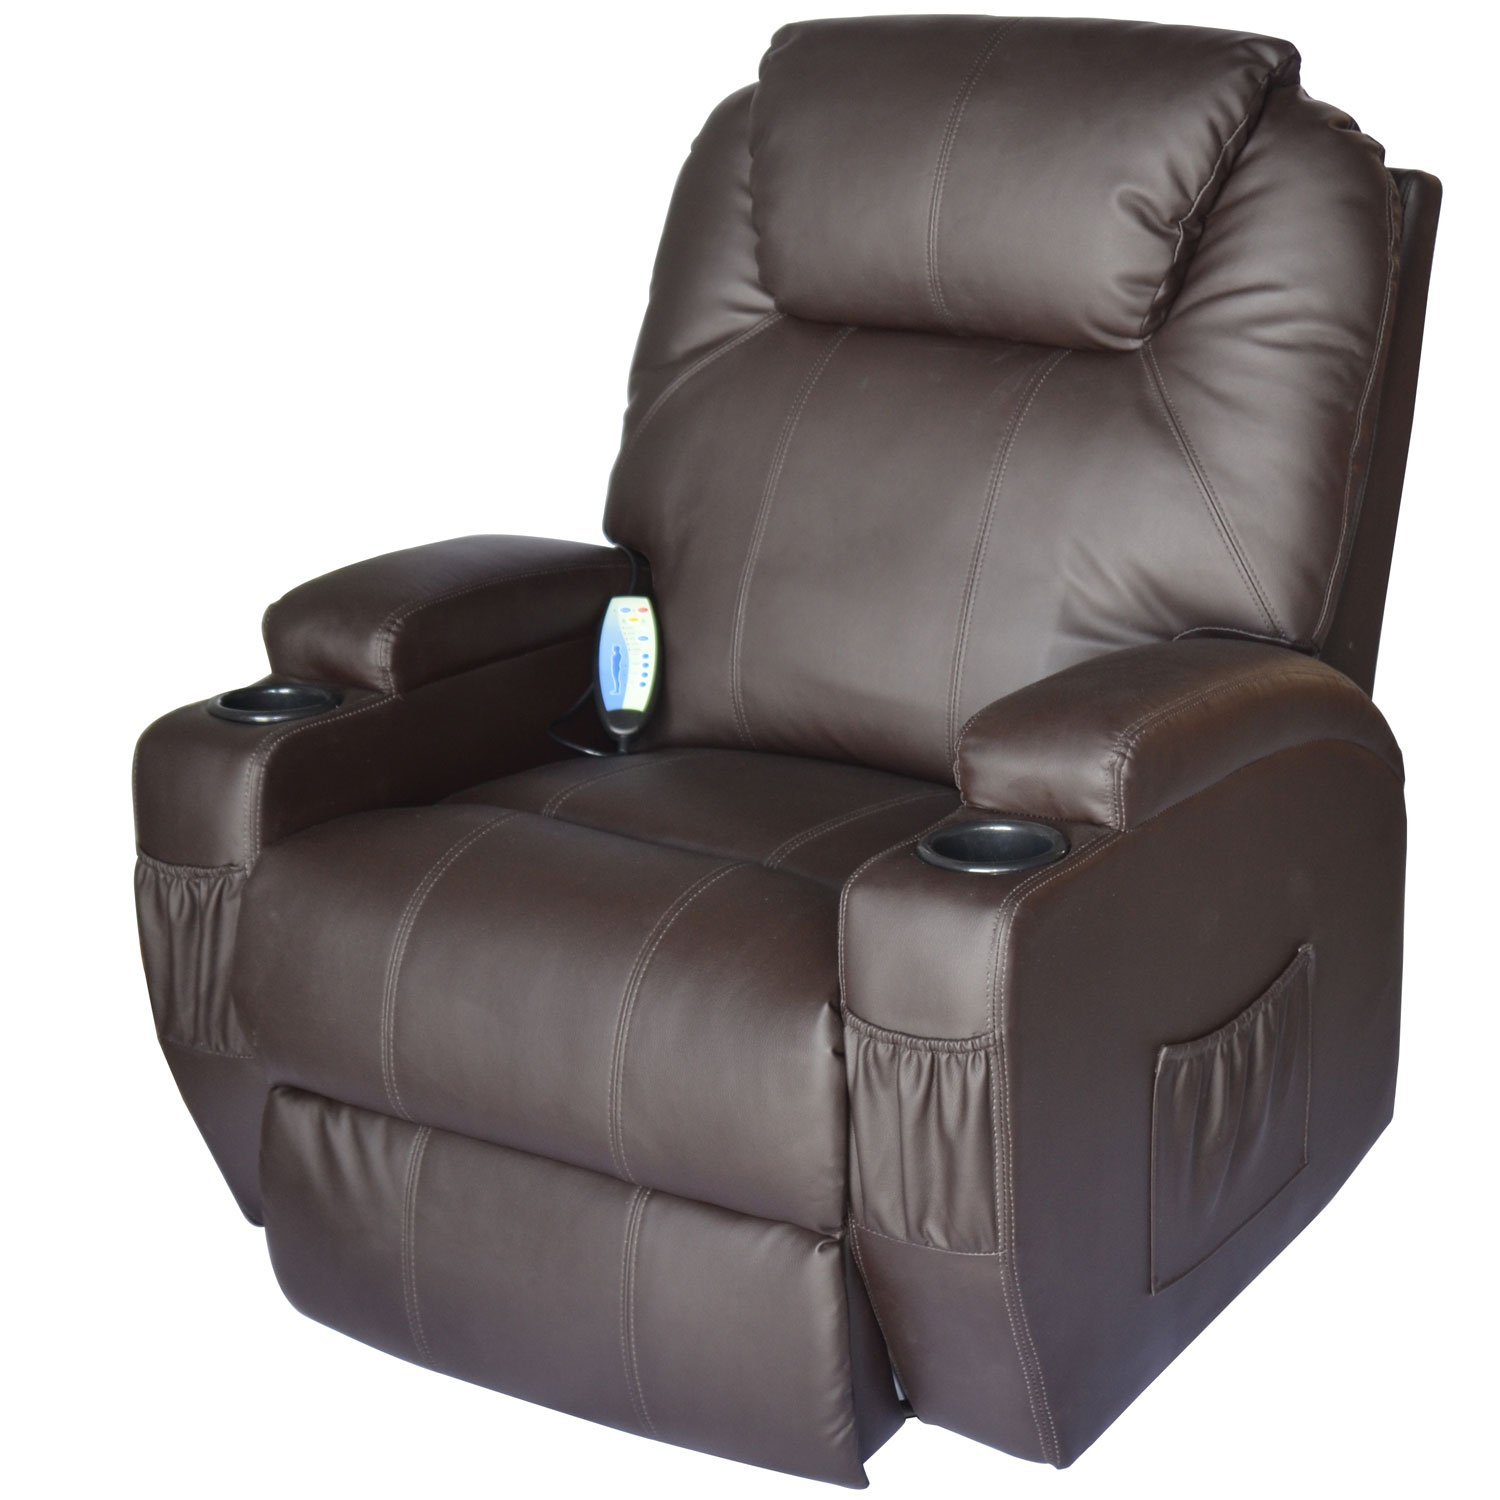 Top Rated Massage Chairs The Top Rated Recliner Brands Best Recliners